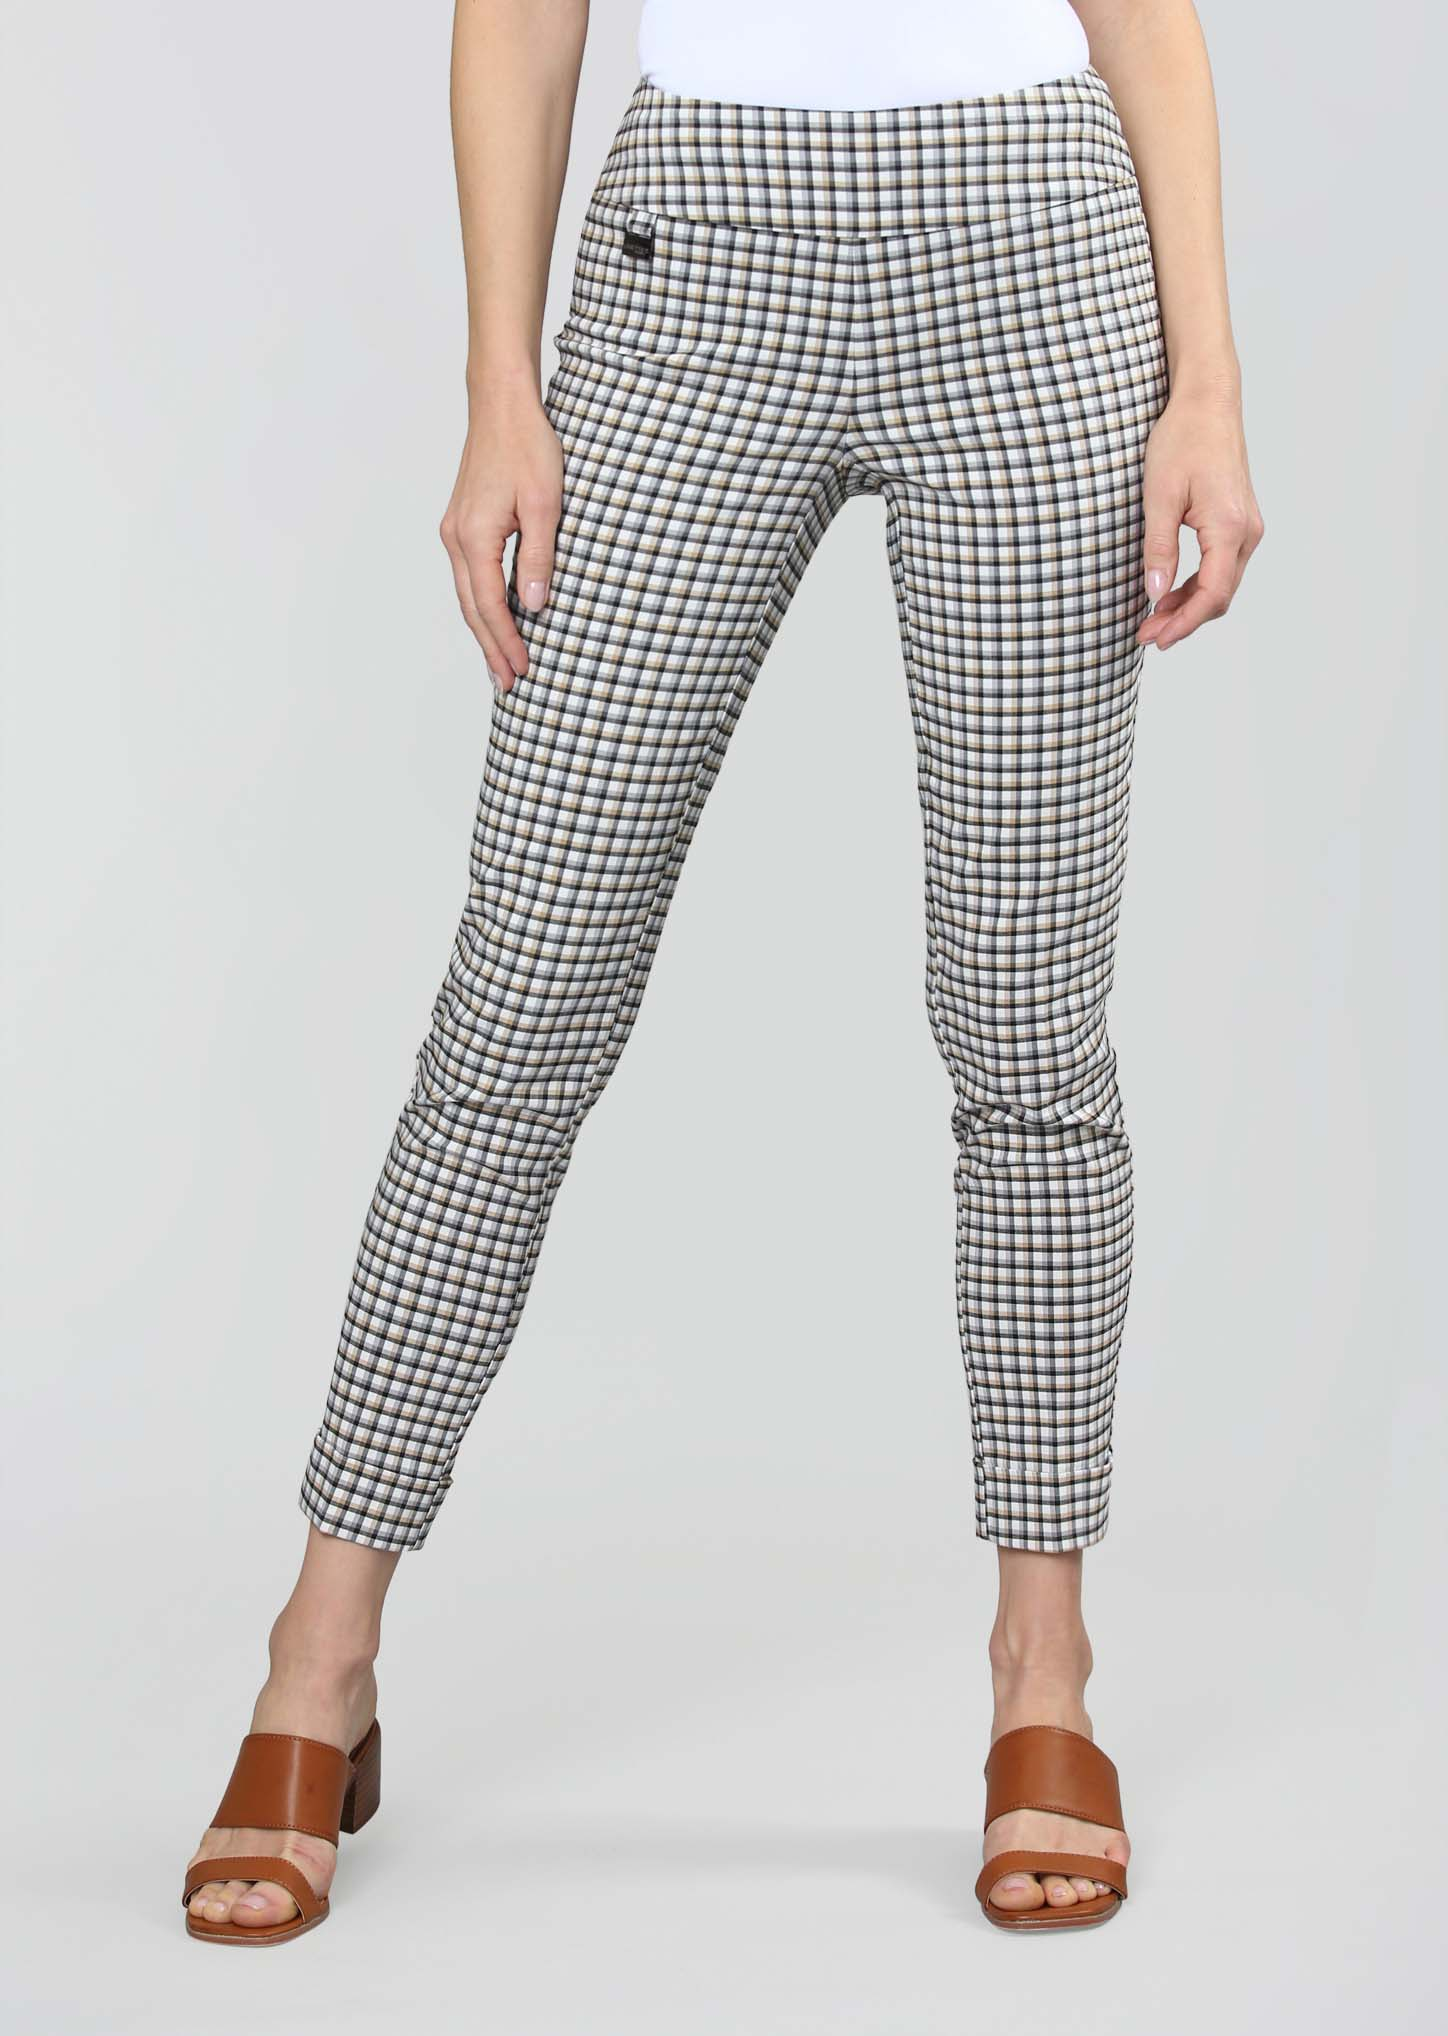 Lisette L. Slim Ankle Cuff Pant Style 782617 Naverra Check Color White/Black